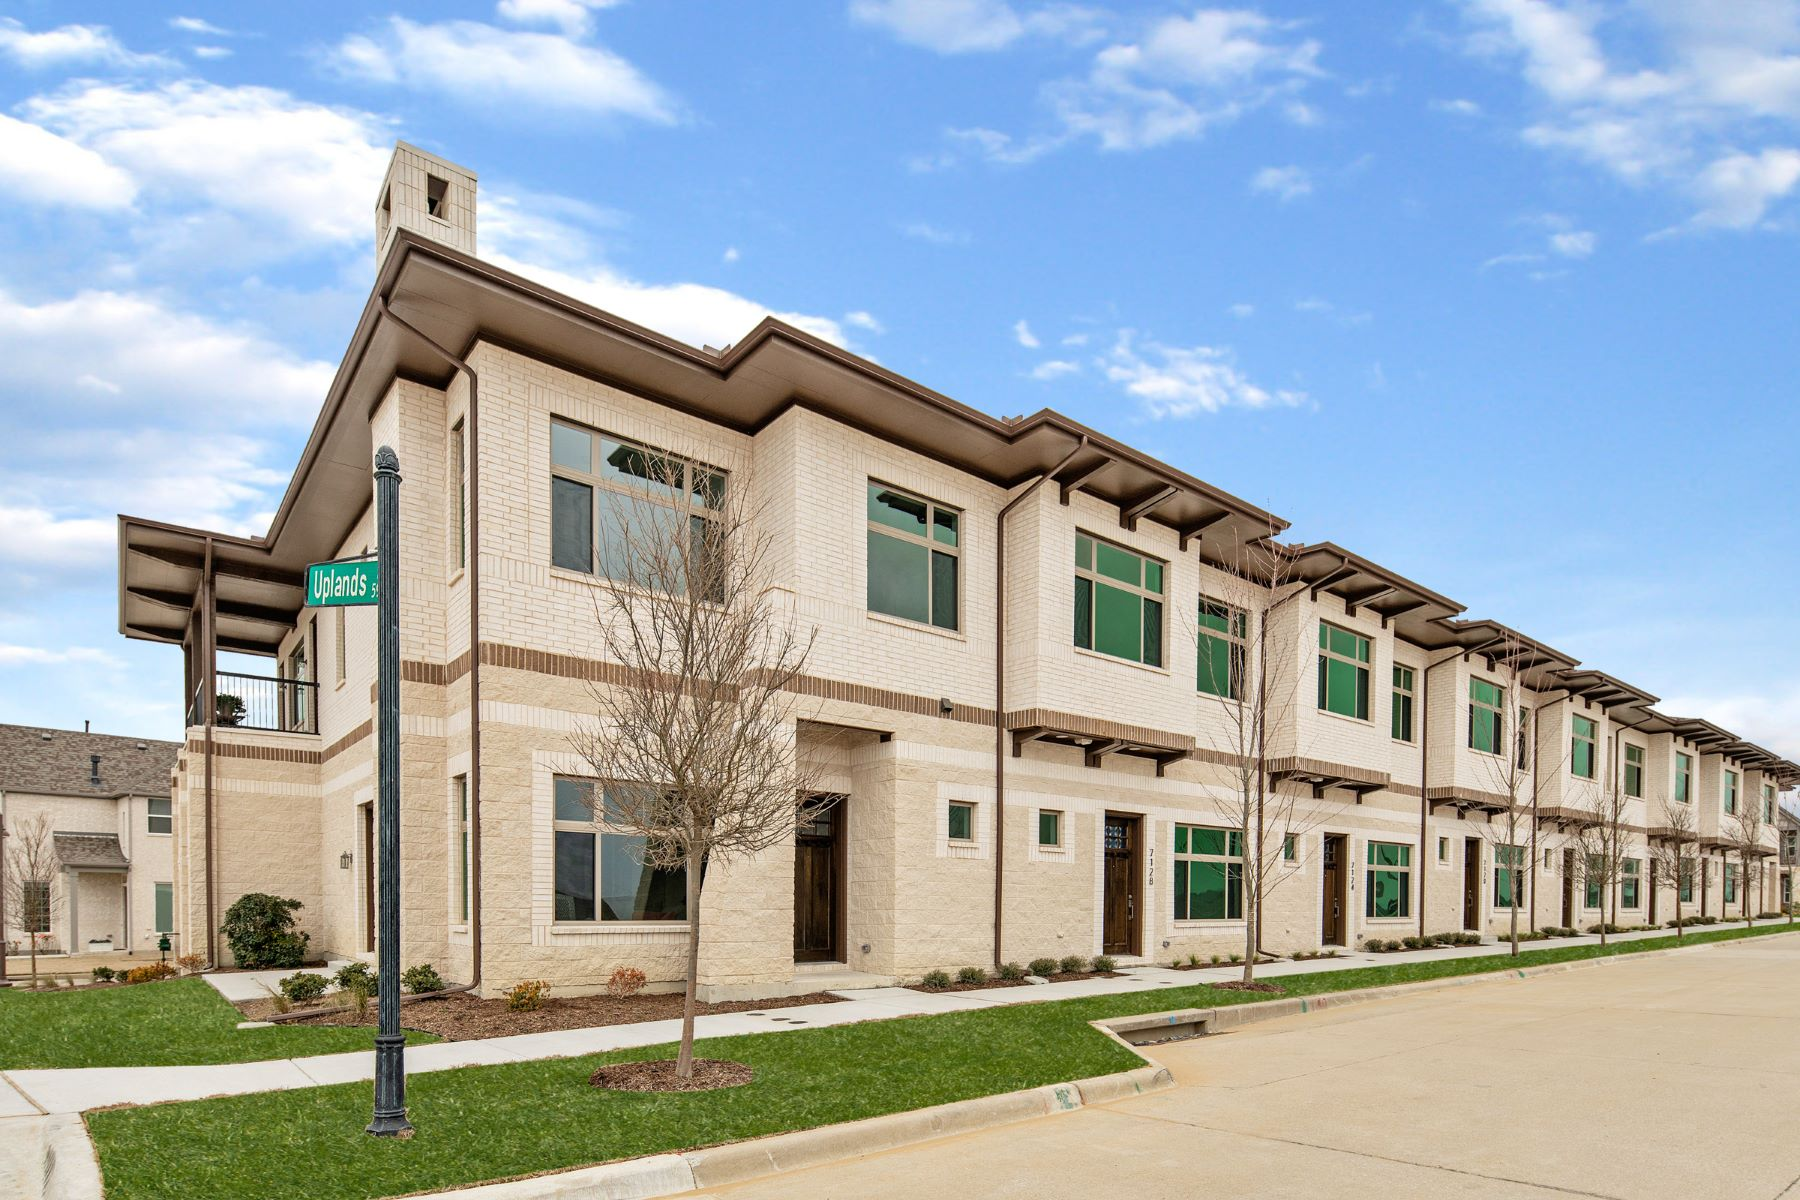 townhouses for Sale at 7120 Wessex Court, McKinney, TX, 75070 7120 Wessex Court McKinney, Texas 75070 United States